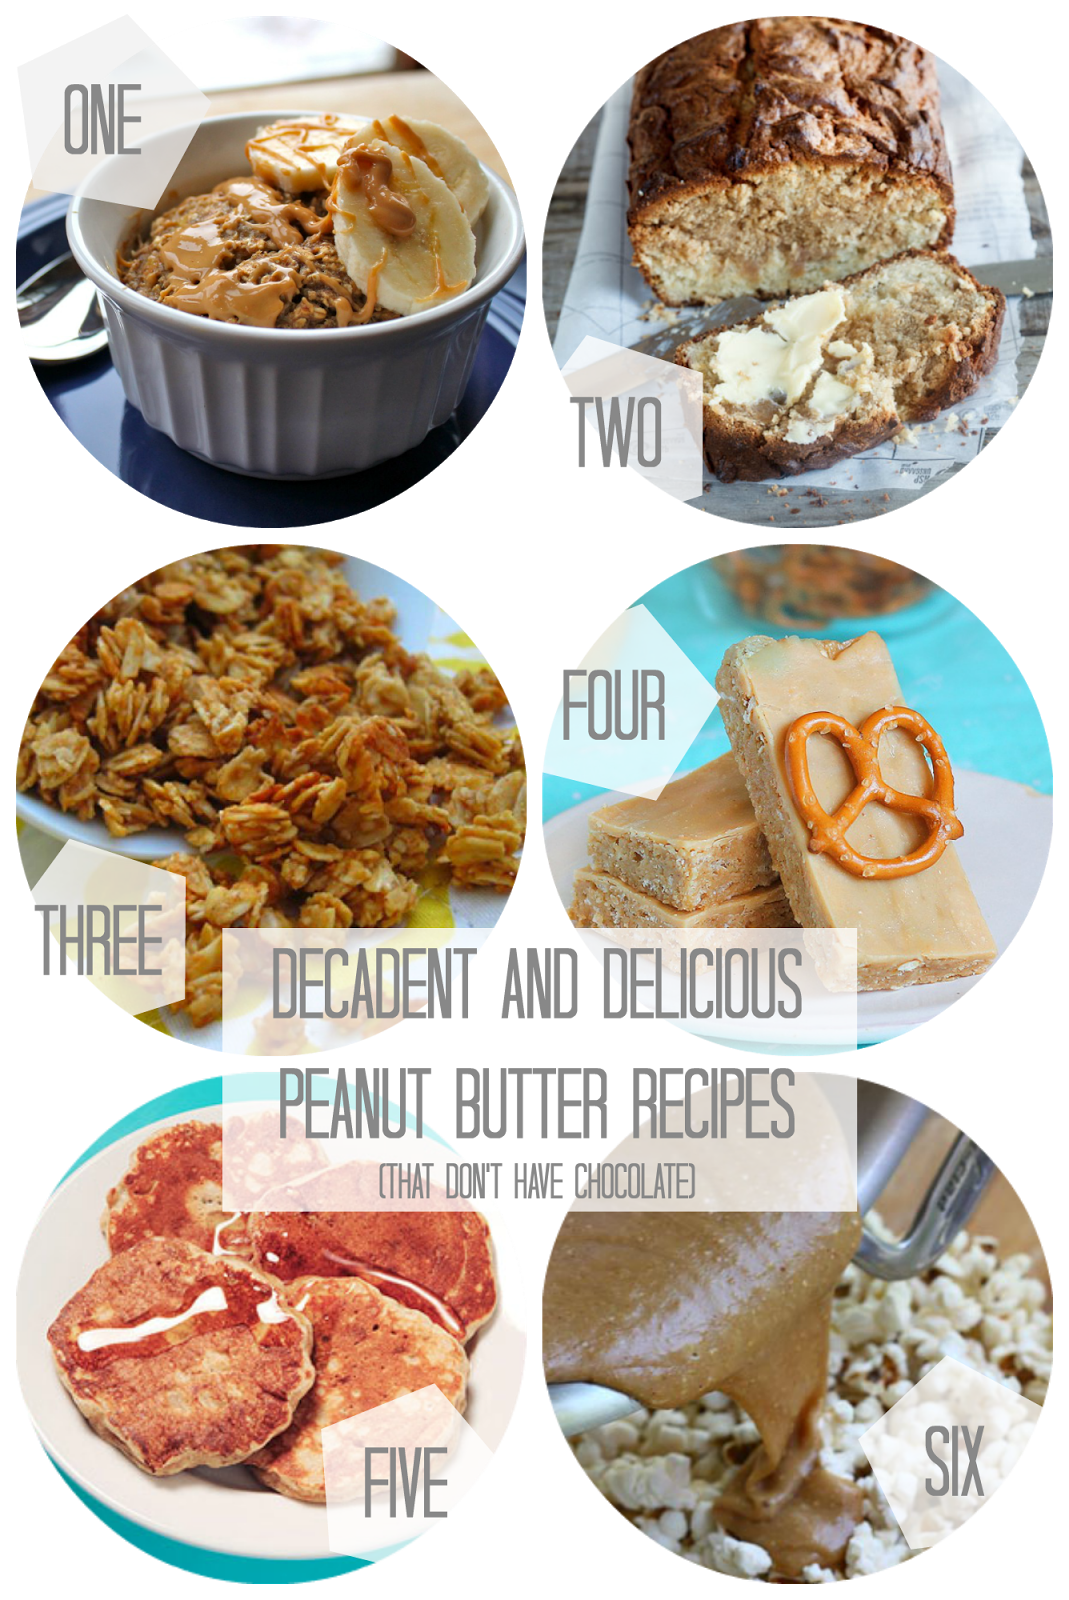 Decadent and Delicious Peanut Butter Recipes